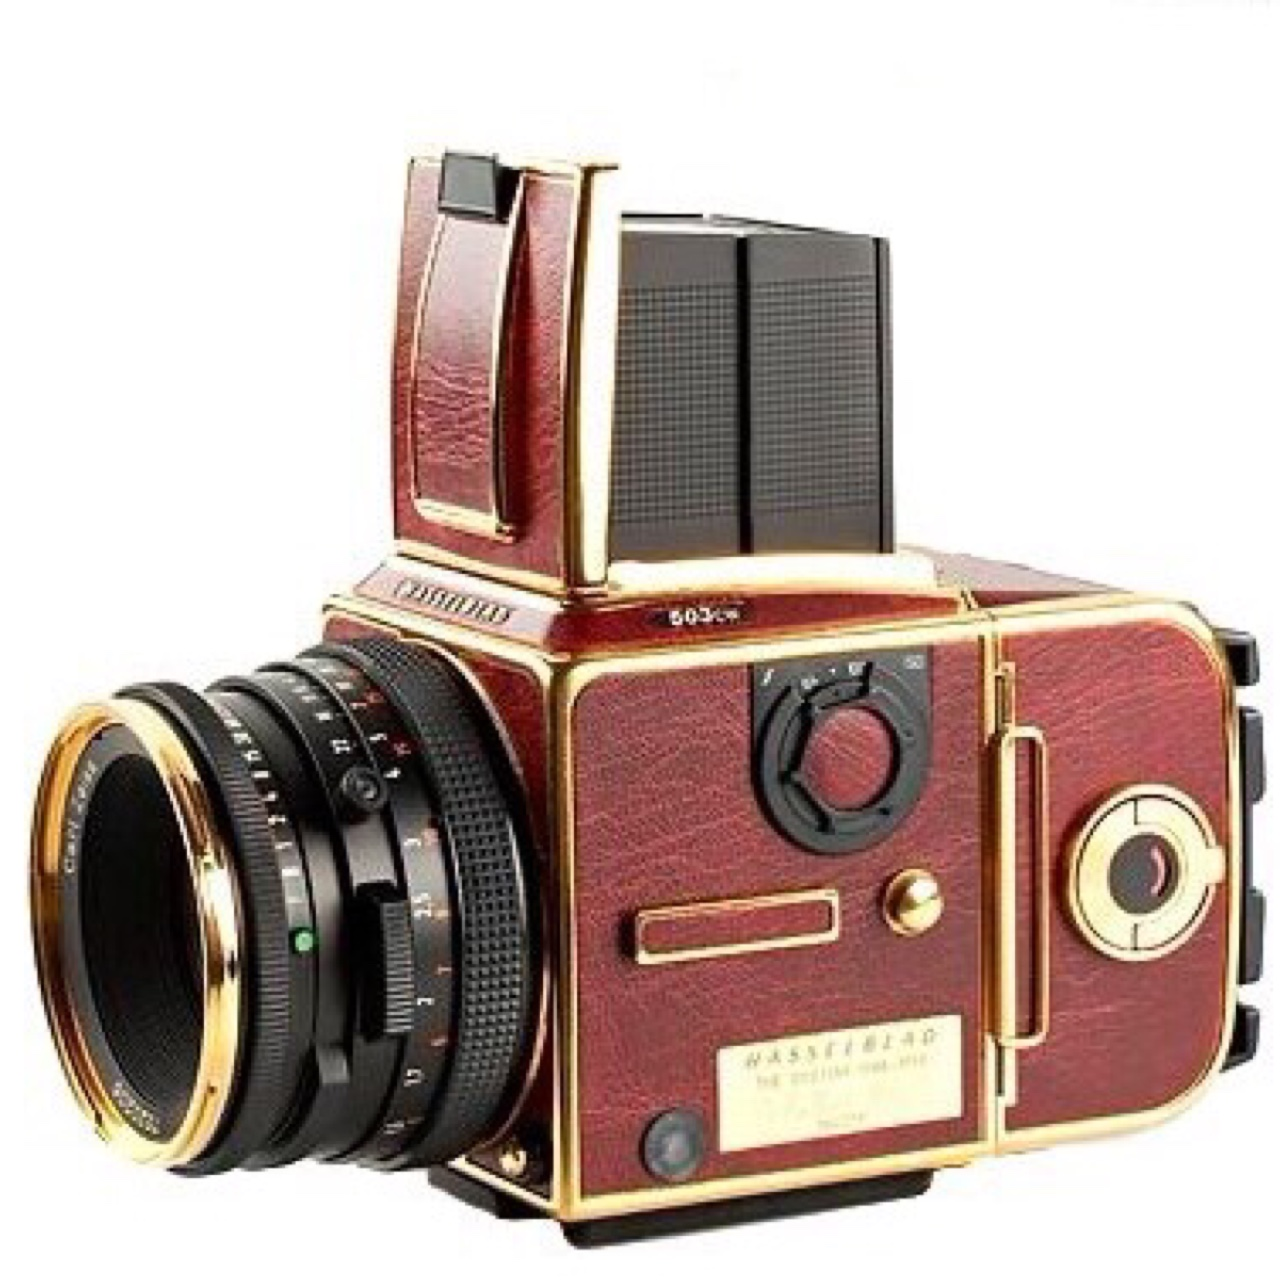 HASSELBLAD 503CW Gold Supreme Edition!! 50th    - Depop